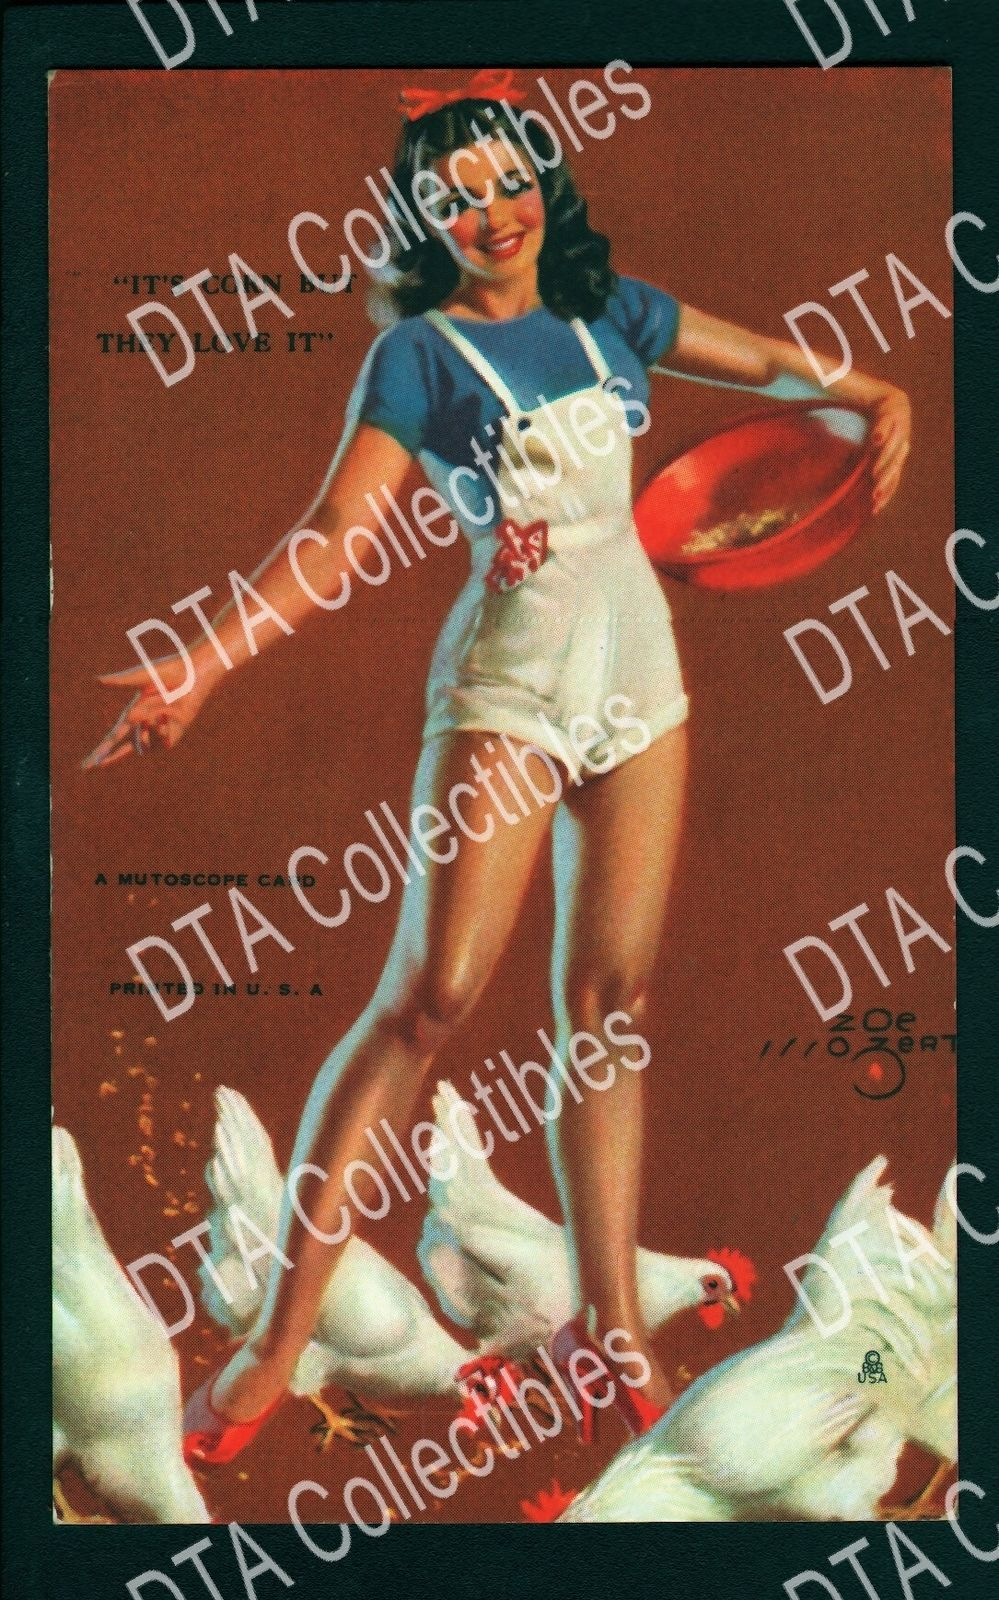 Primary image for MUTOSCOPE-PIN-UP-ARCADE CARD-1945-ZOE MOZERT-CHICKENS VF/NM